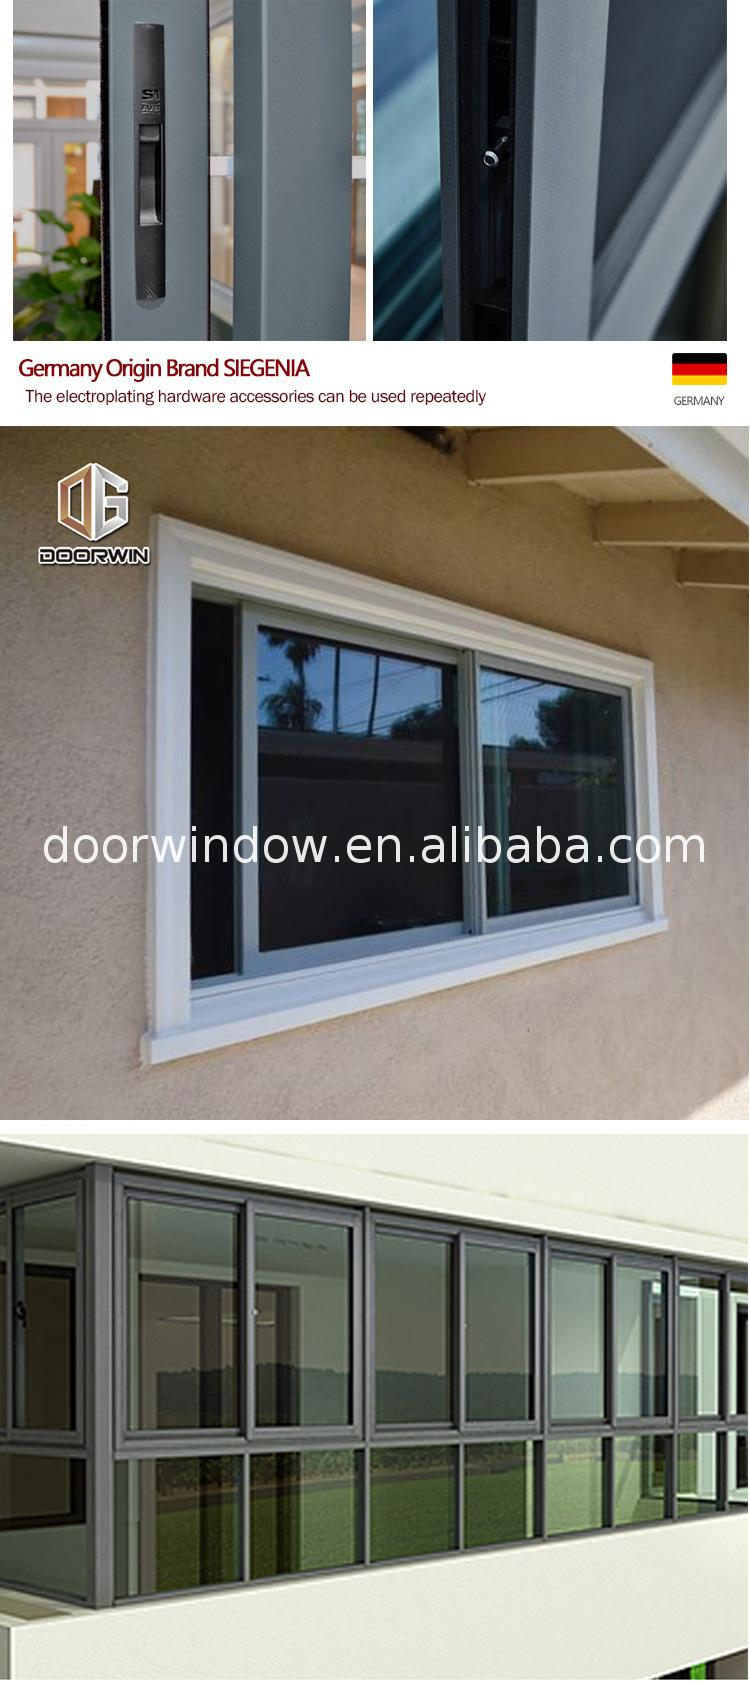 China factory supplied top quality yorkshire windows sheffield xox sliding window www doorwin